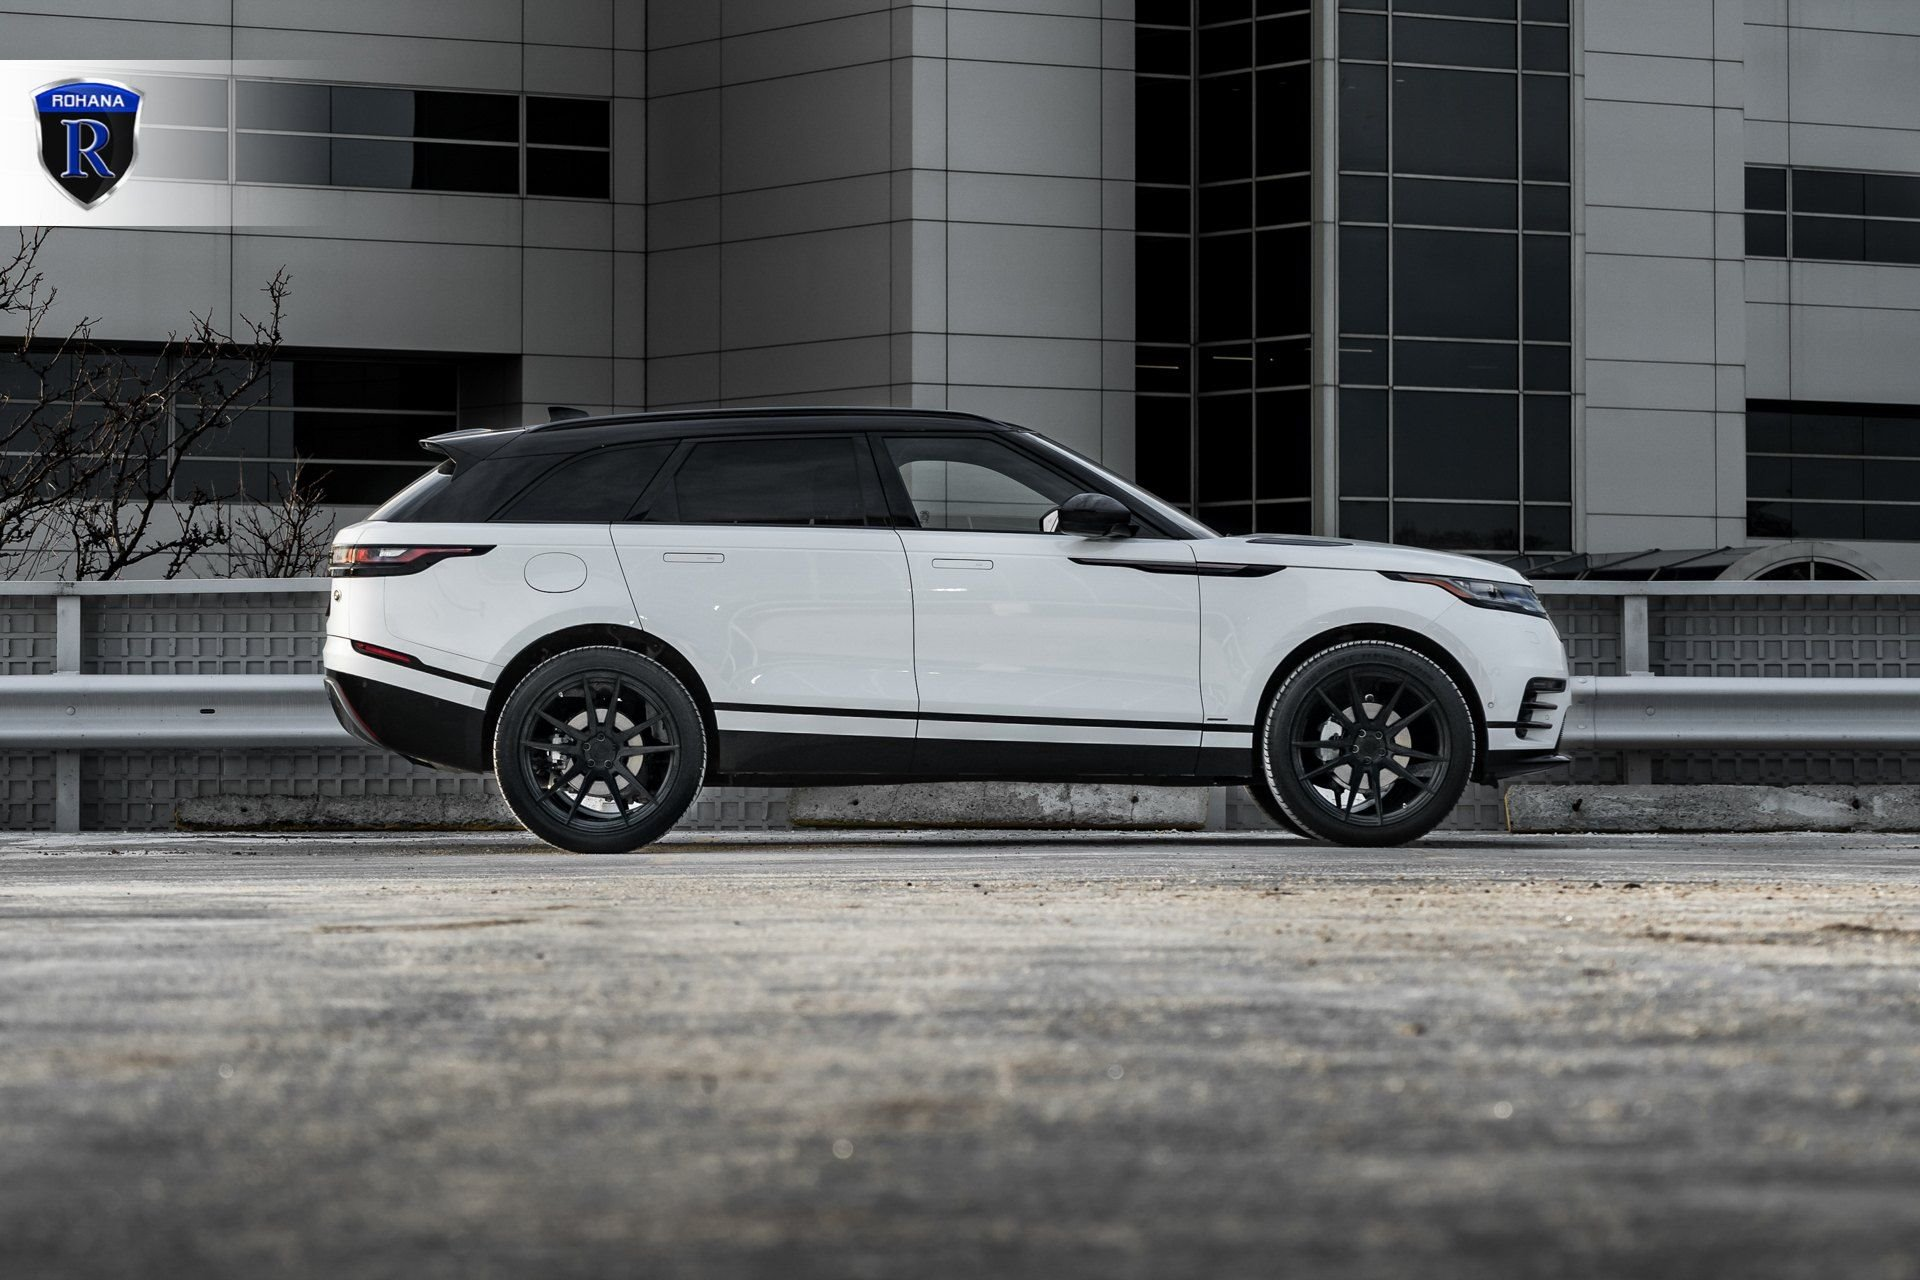 New 2019 Land Rover-Range Rover Velar P380 R-Dynamic HSE Range Rover Velar P380 R-Dynamic HSE for sale $74,500 at M and V Leasing in Brooklyn NY 11223 1